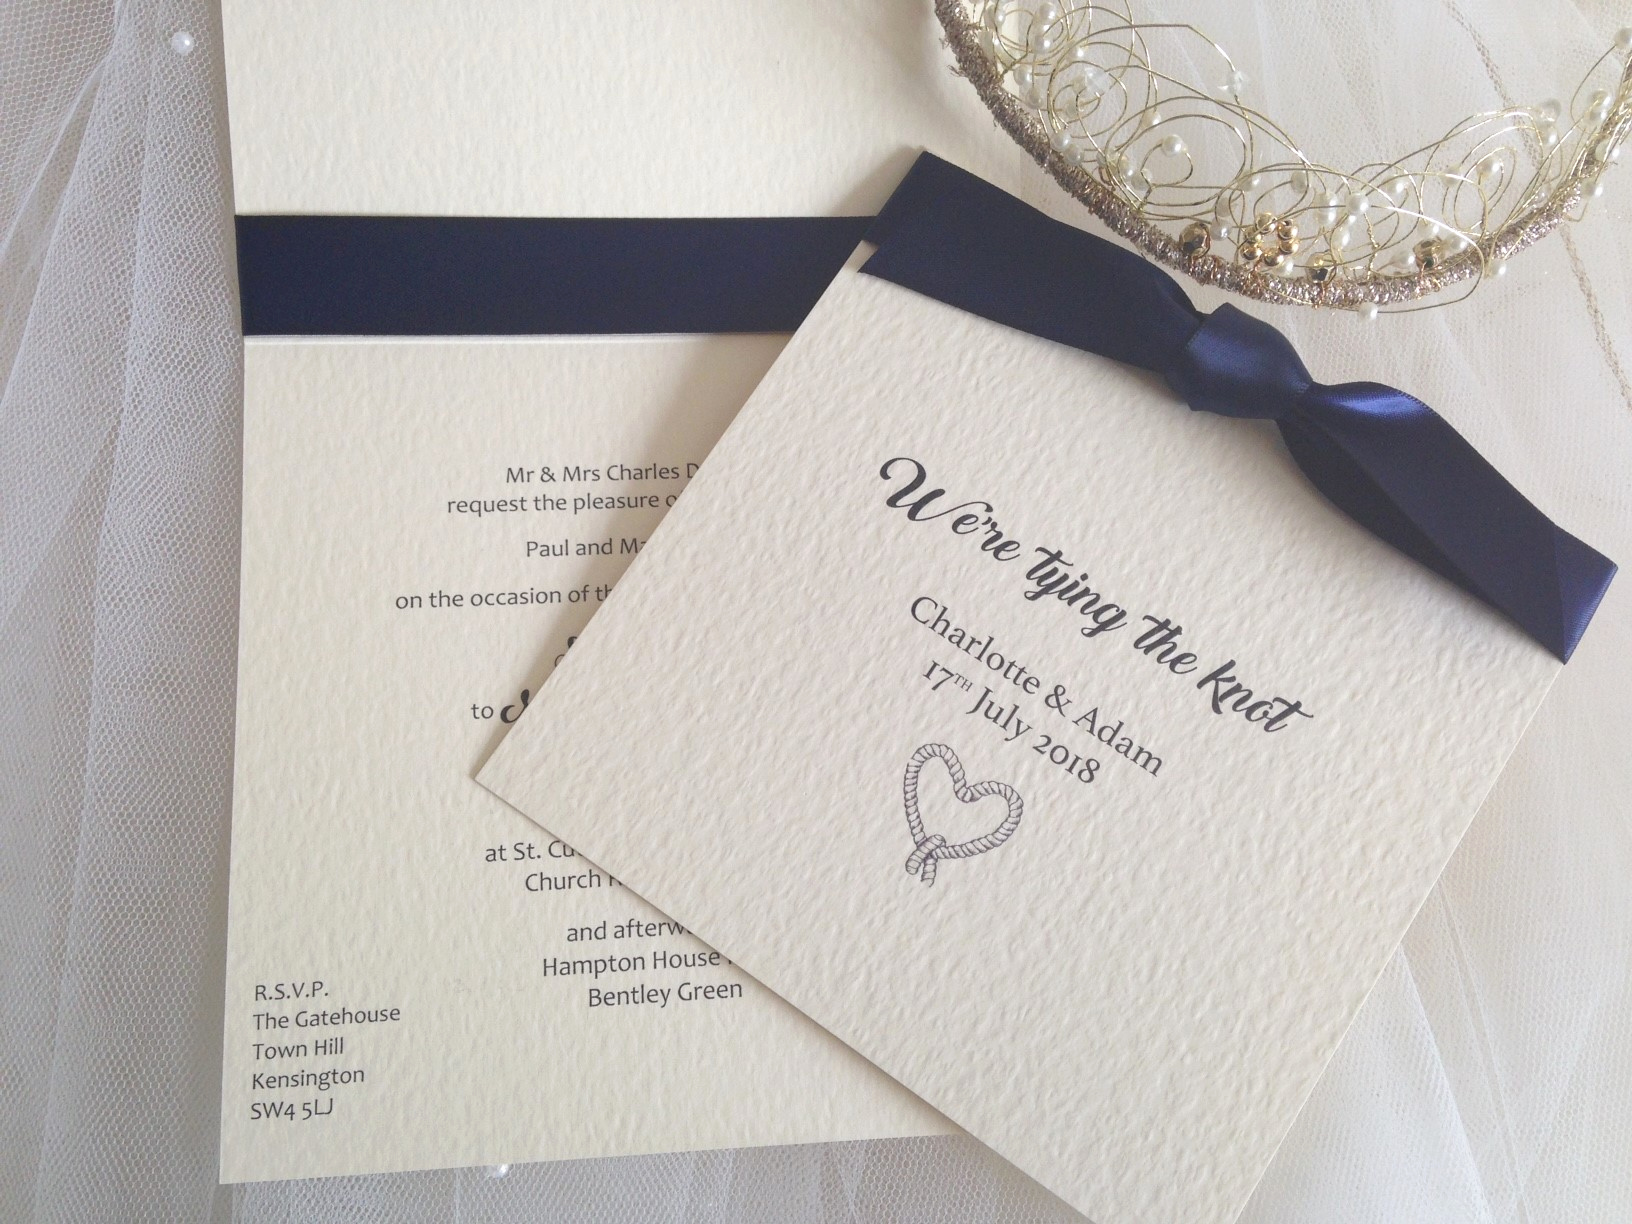 Tying the Knot Wedding Invitation Luxury Tying the Knot Wedding Invitations